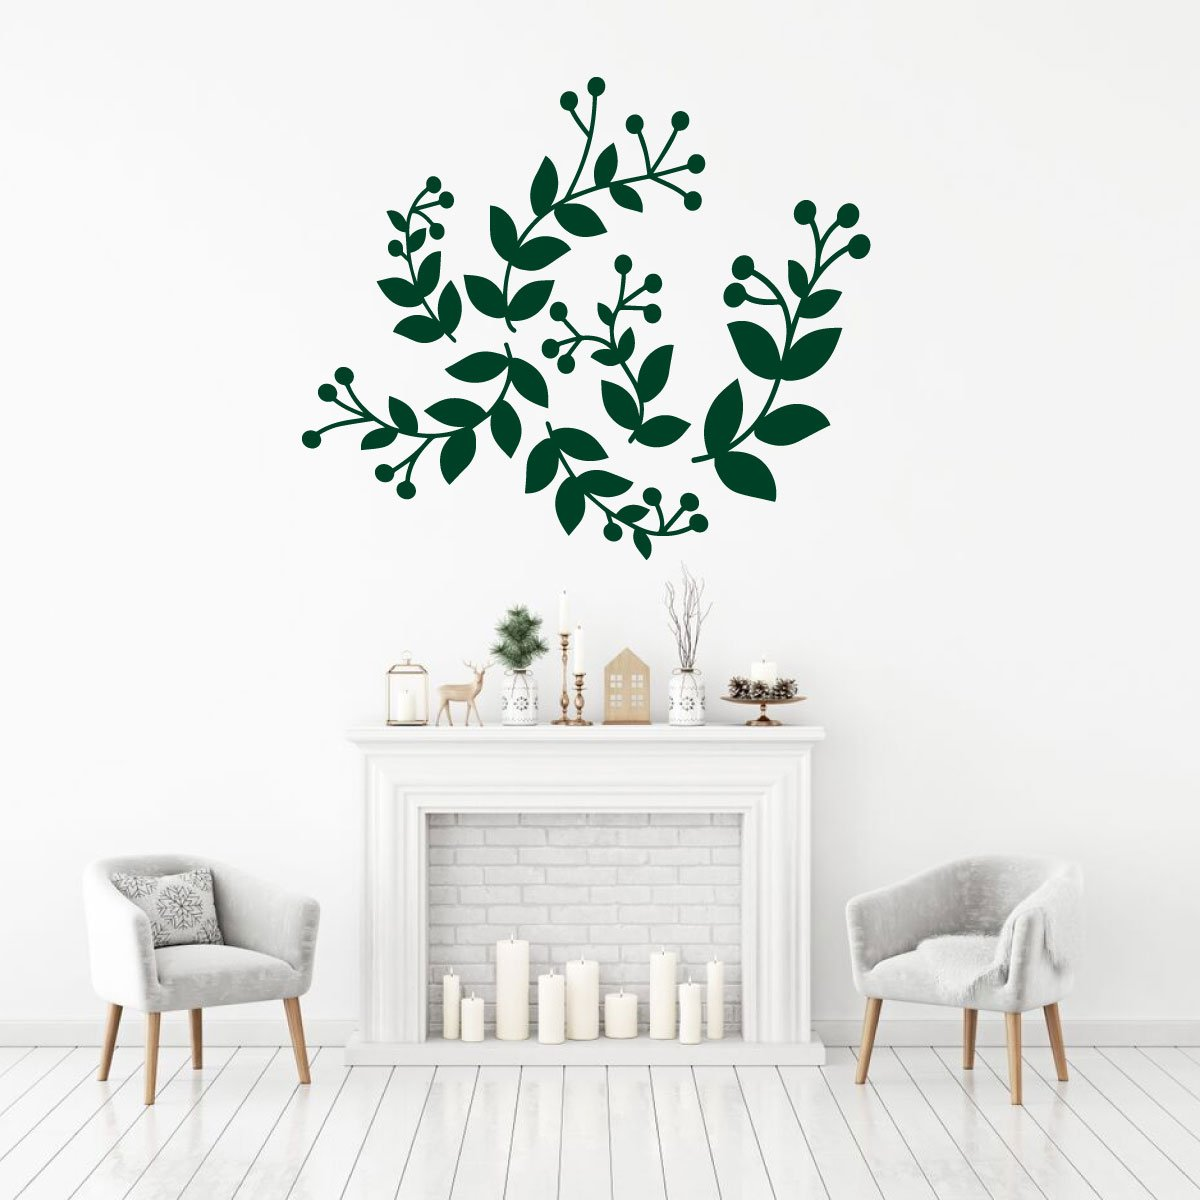 Wall Decals For Living Room Vinyl Decor Wall Decal